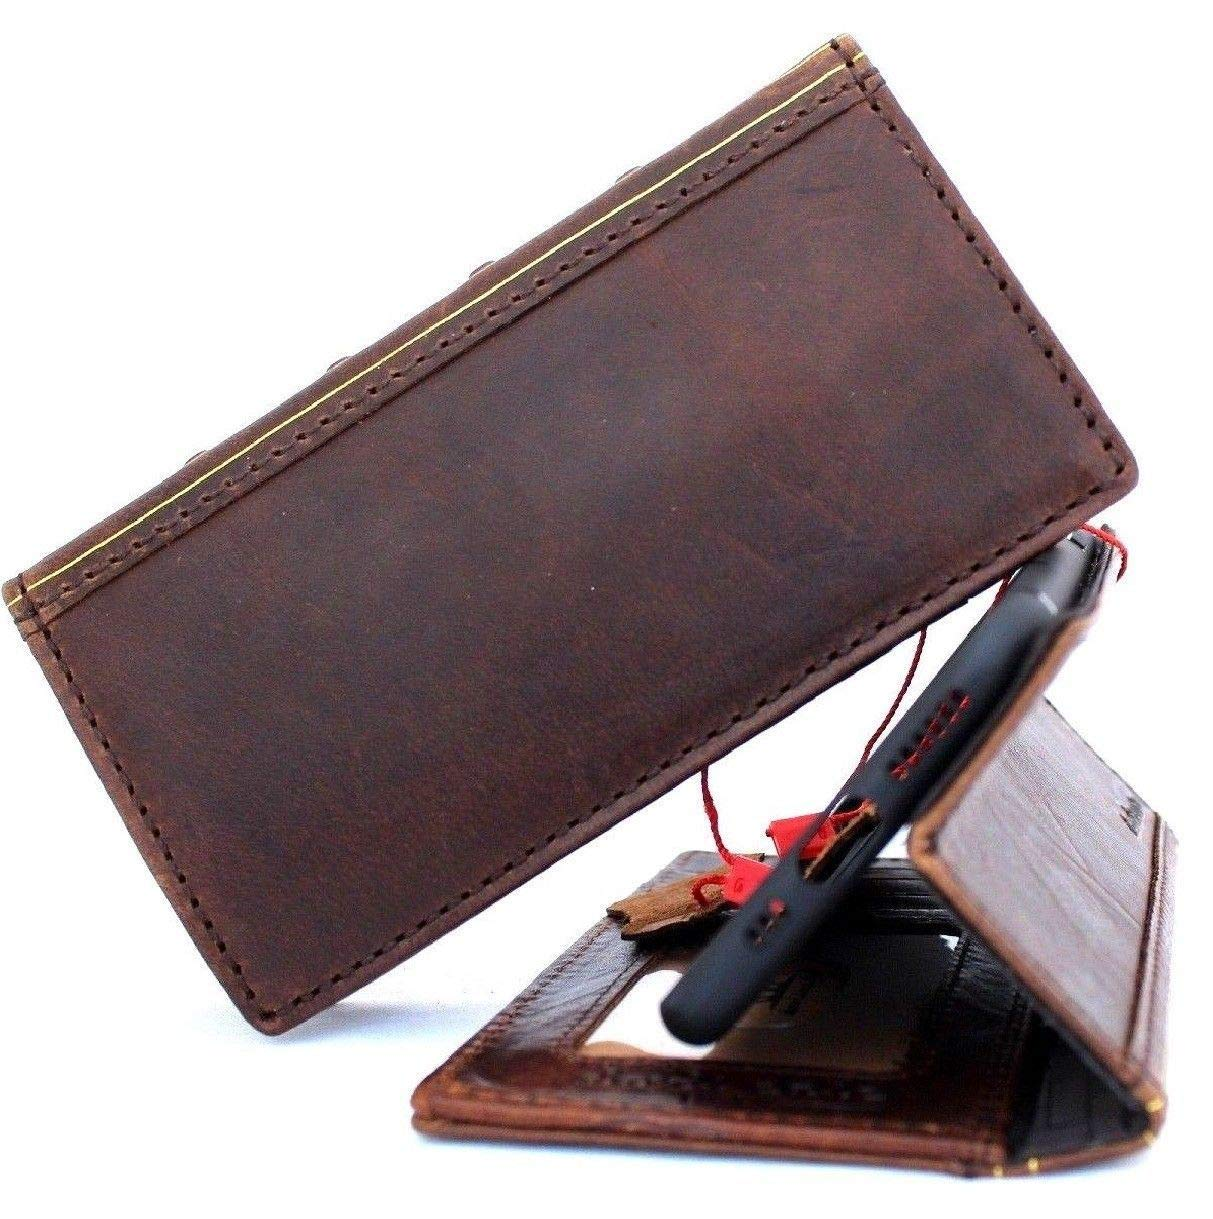 Genuine Leather Case for iPhone xr Book Bible Wallet Handmade Cover Luxury Cards Slots Rubber Holder Vintage DavisCase xr